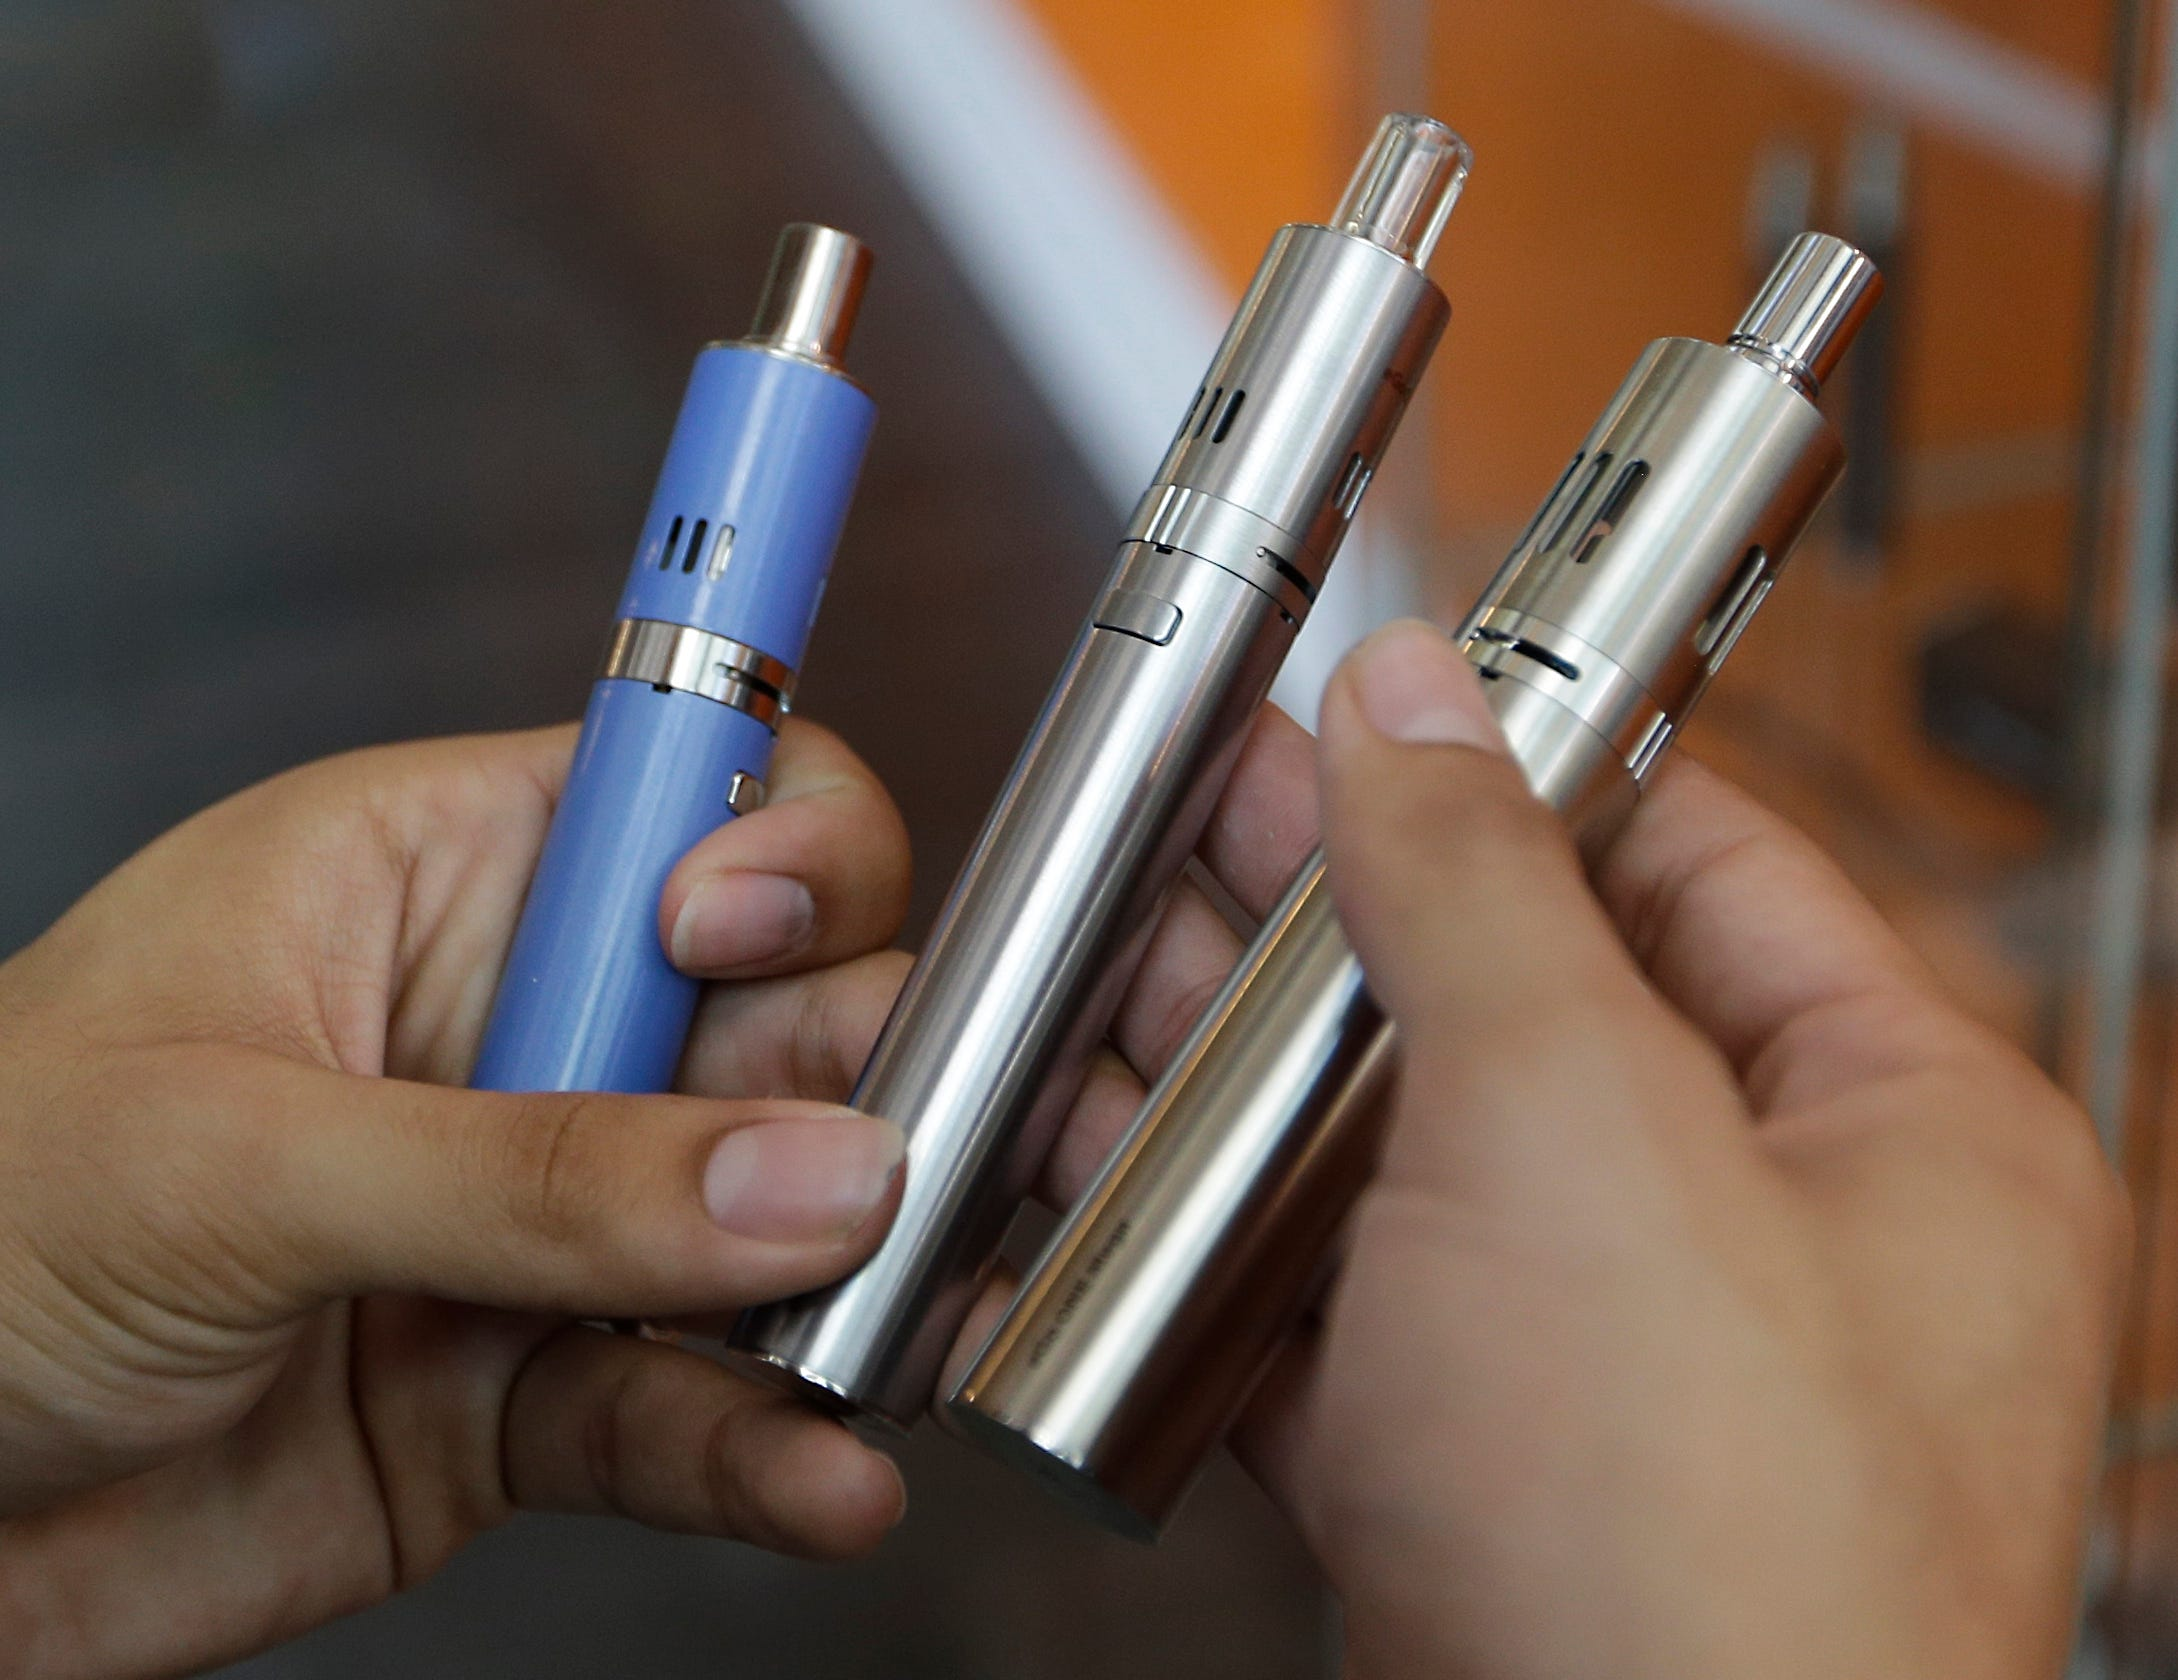 Outlawing electronic cigarettes